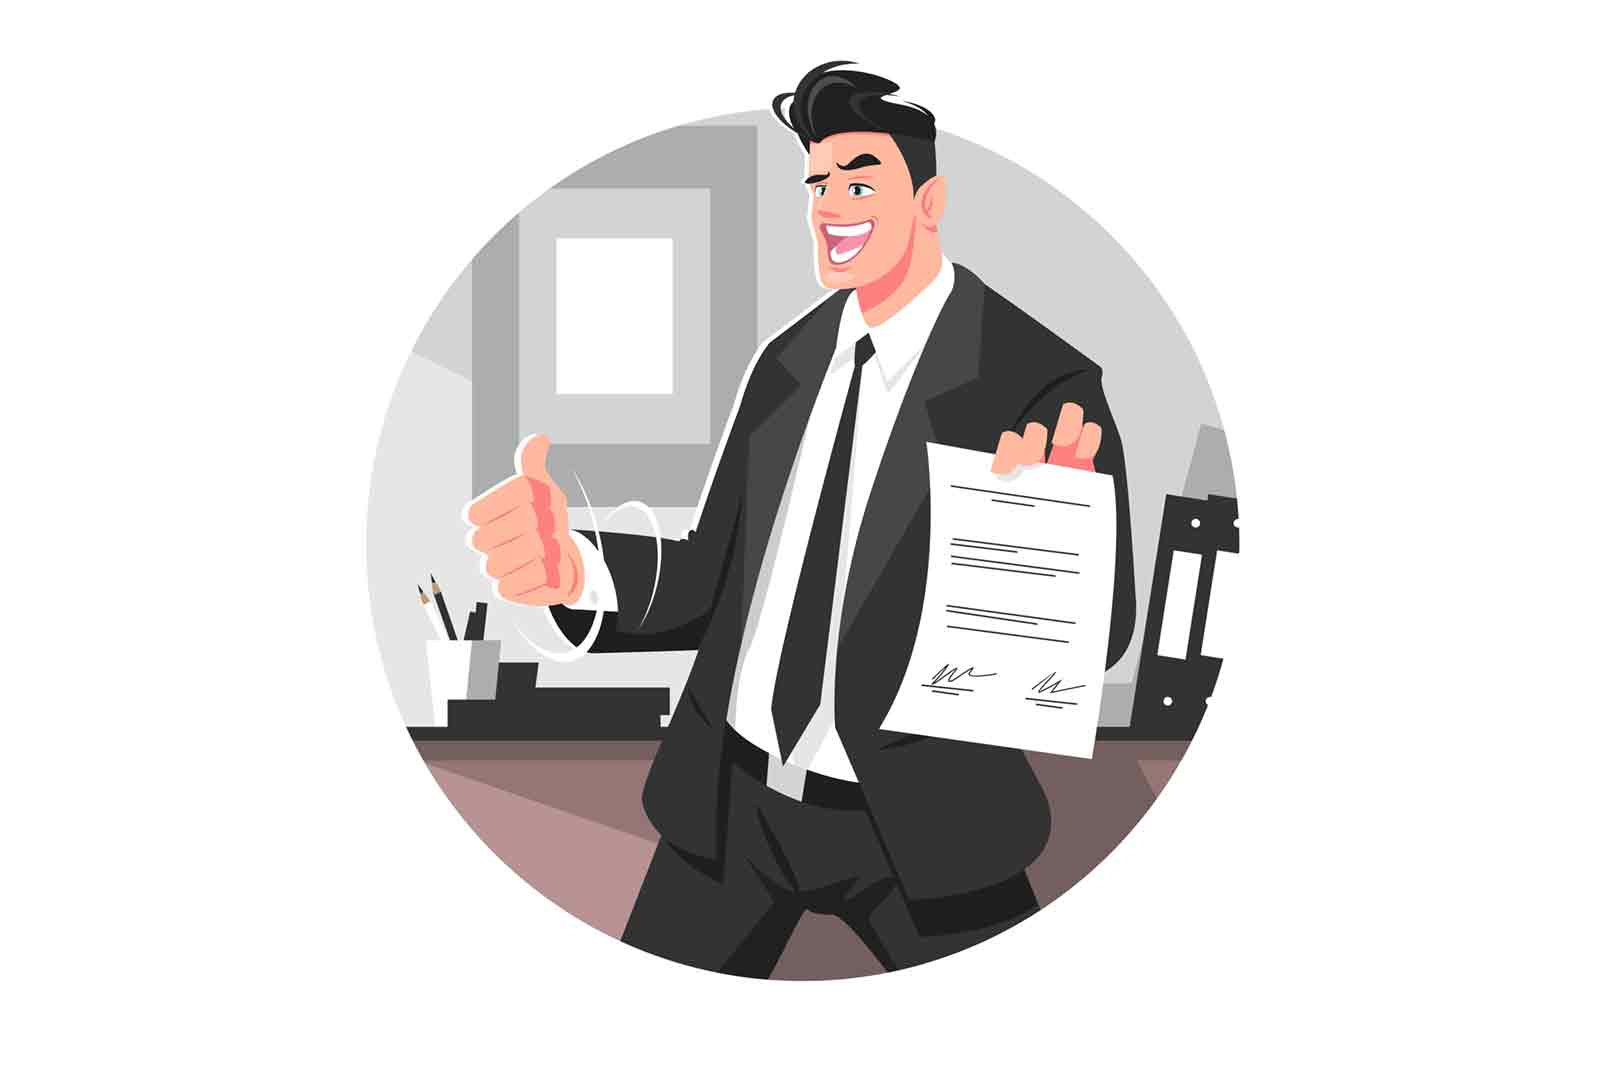 Happy businessman in suit vector illustration. Successful office worker with signed contract paper flat style. Company job and career growth concept. Isolated on white background